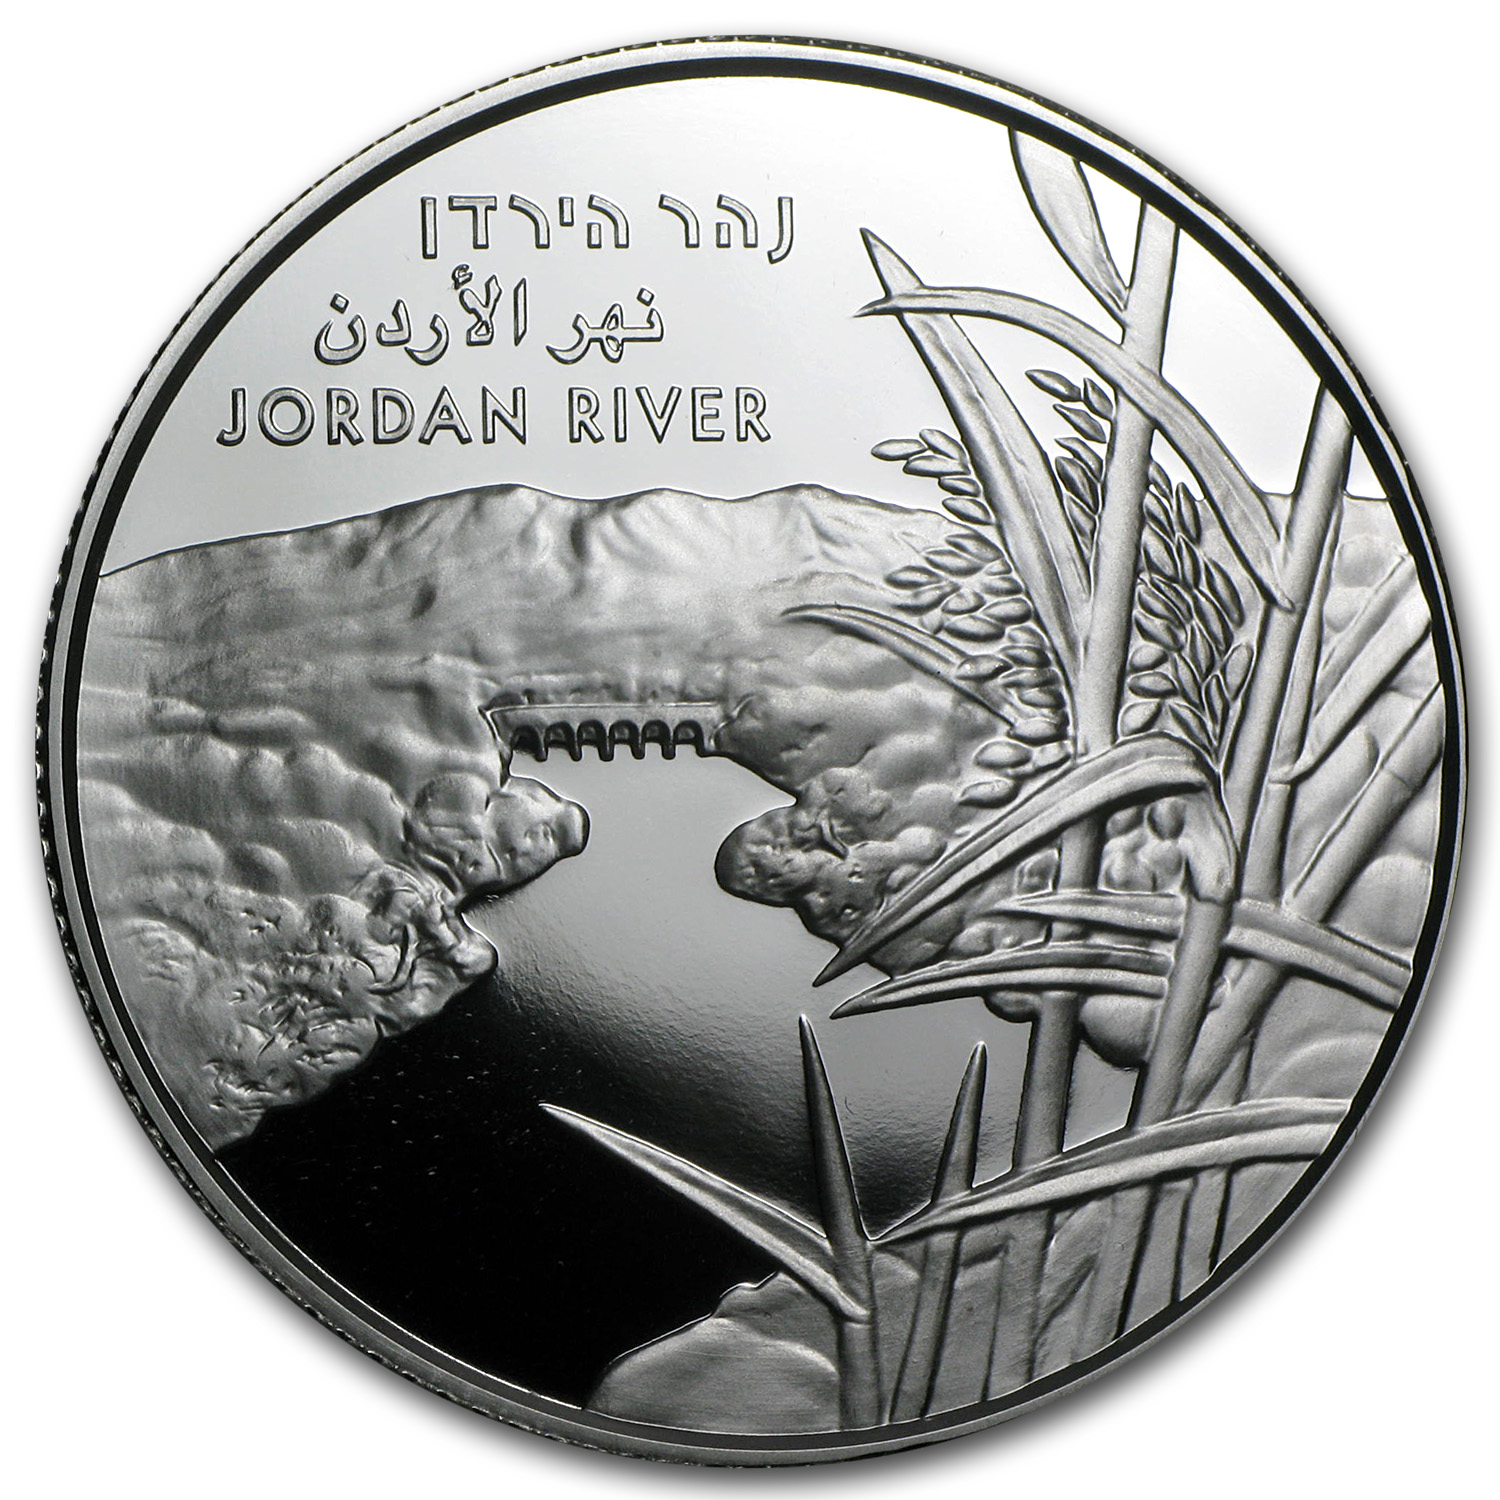 2013 Israel Silver 2 NIS The Jordan River Proof